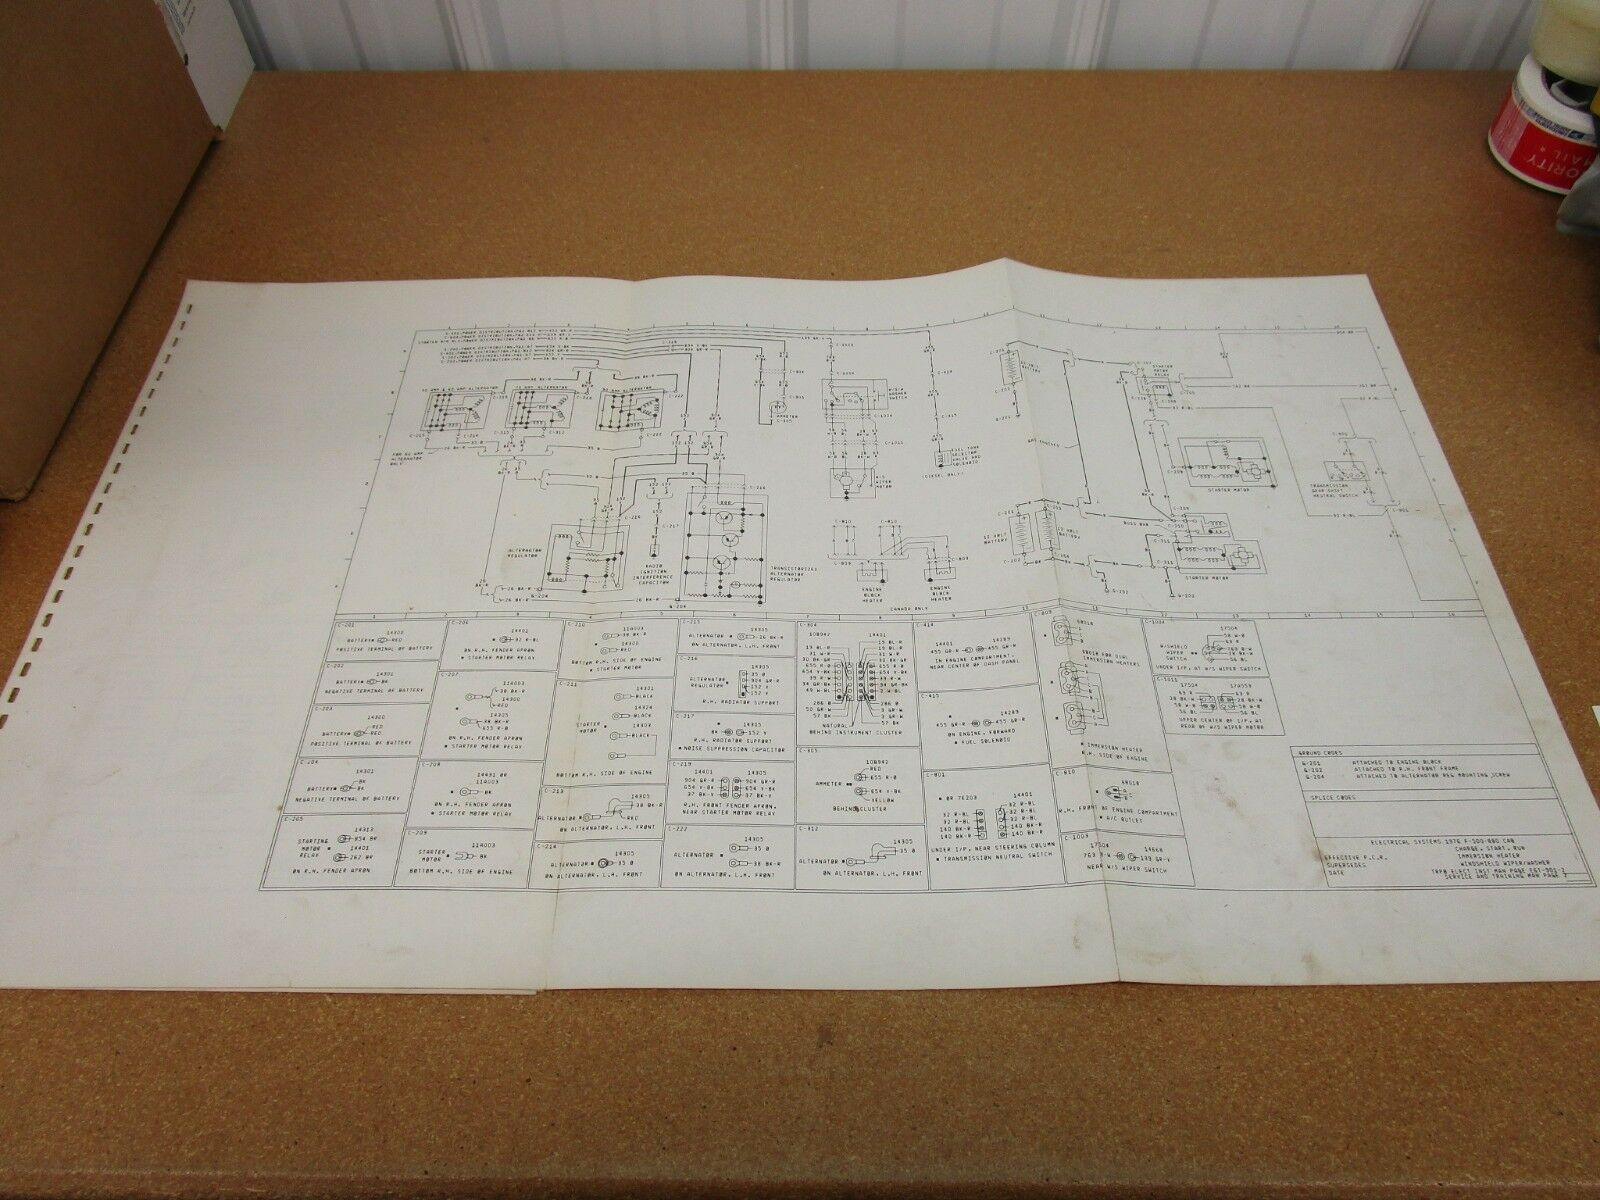 1976 ford f500 f600 f750 truck wiring diagram sheet schematics rh picclick co uk Ford Electrical Wiring Diagrams Ford E-150 Wiring-Diagram